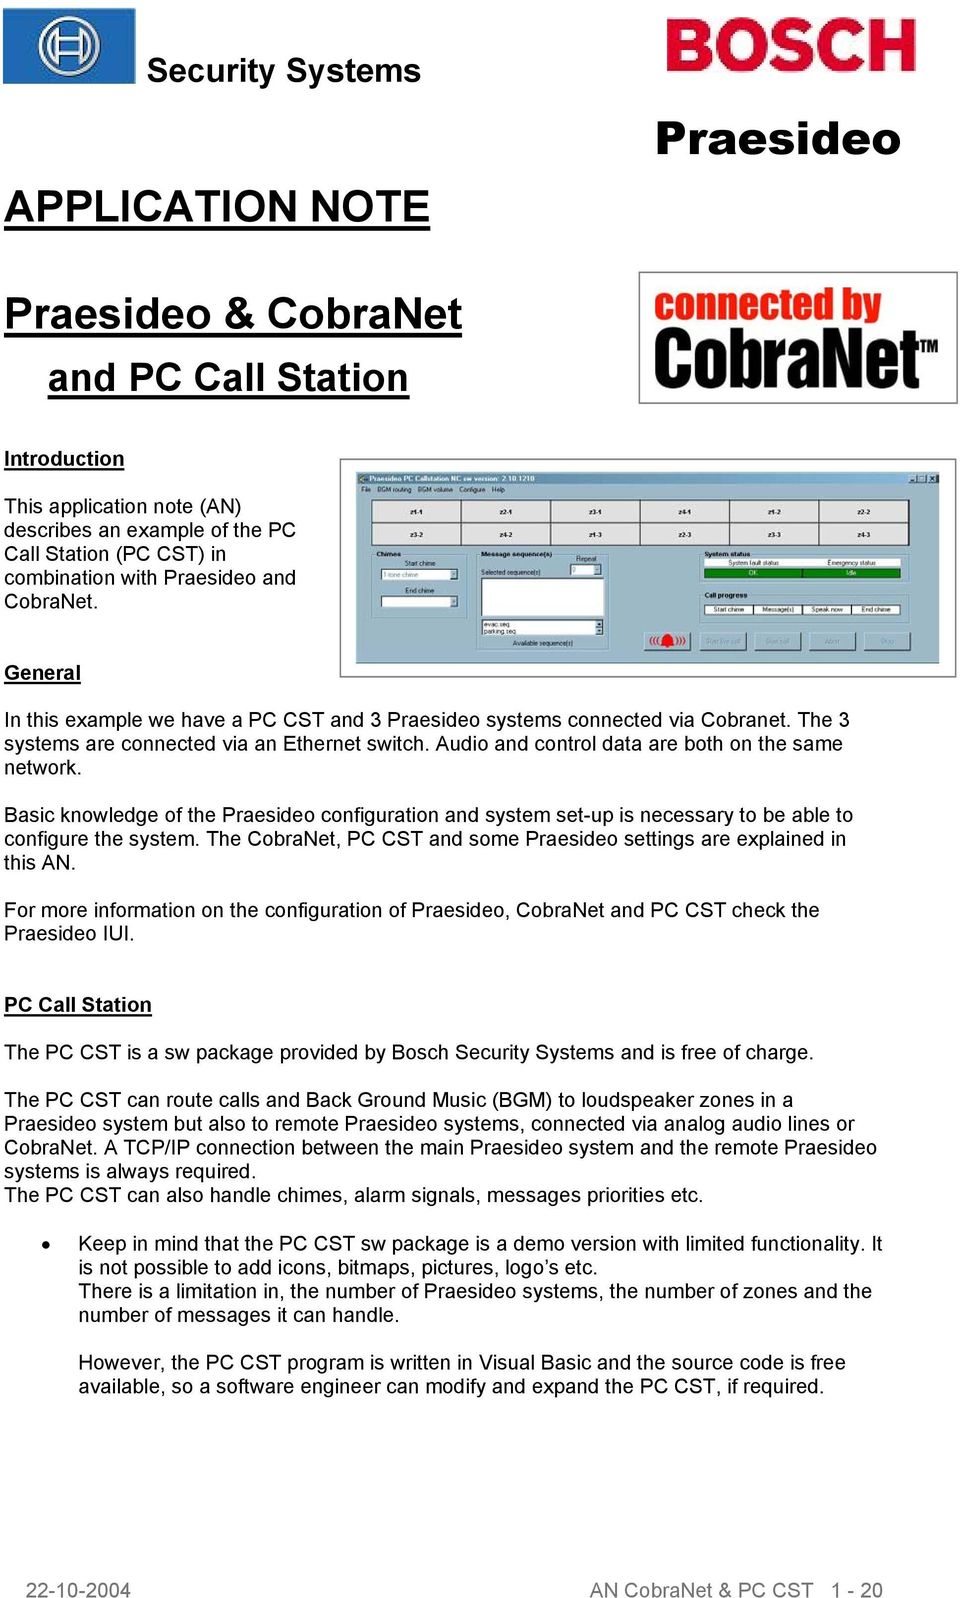 Basic knowledge of the configuration and system set-up is necessary to be able to configure the system. The CobraNet, PC CST and some settings are explained in this AN.